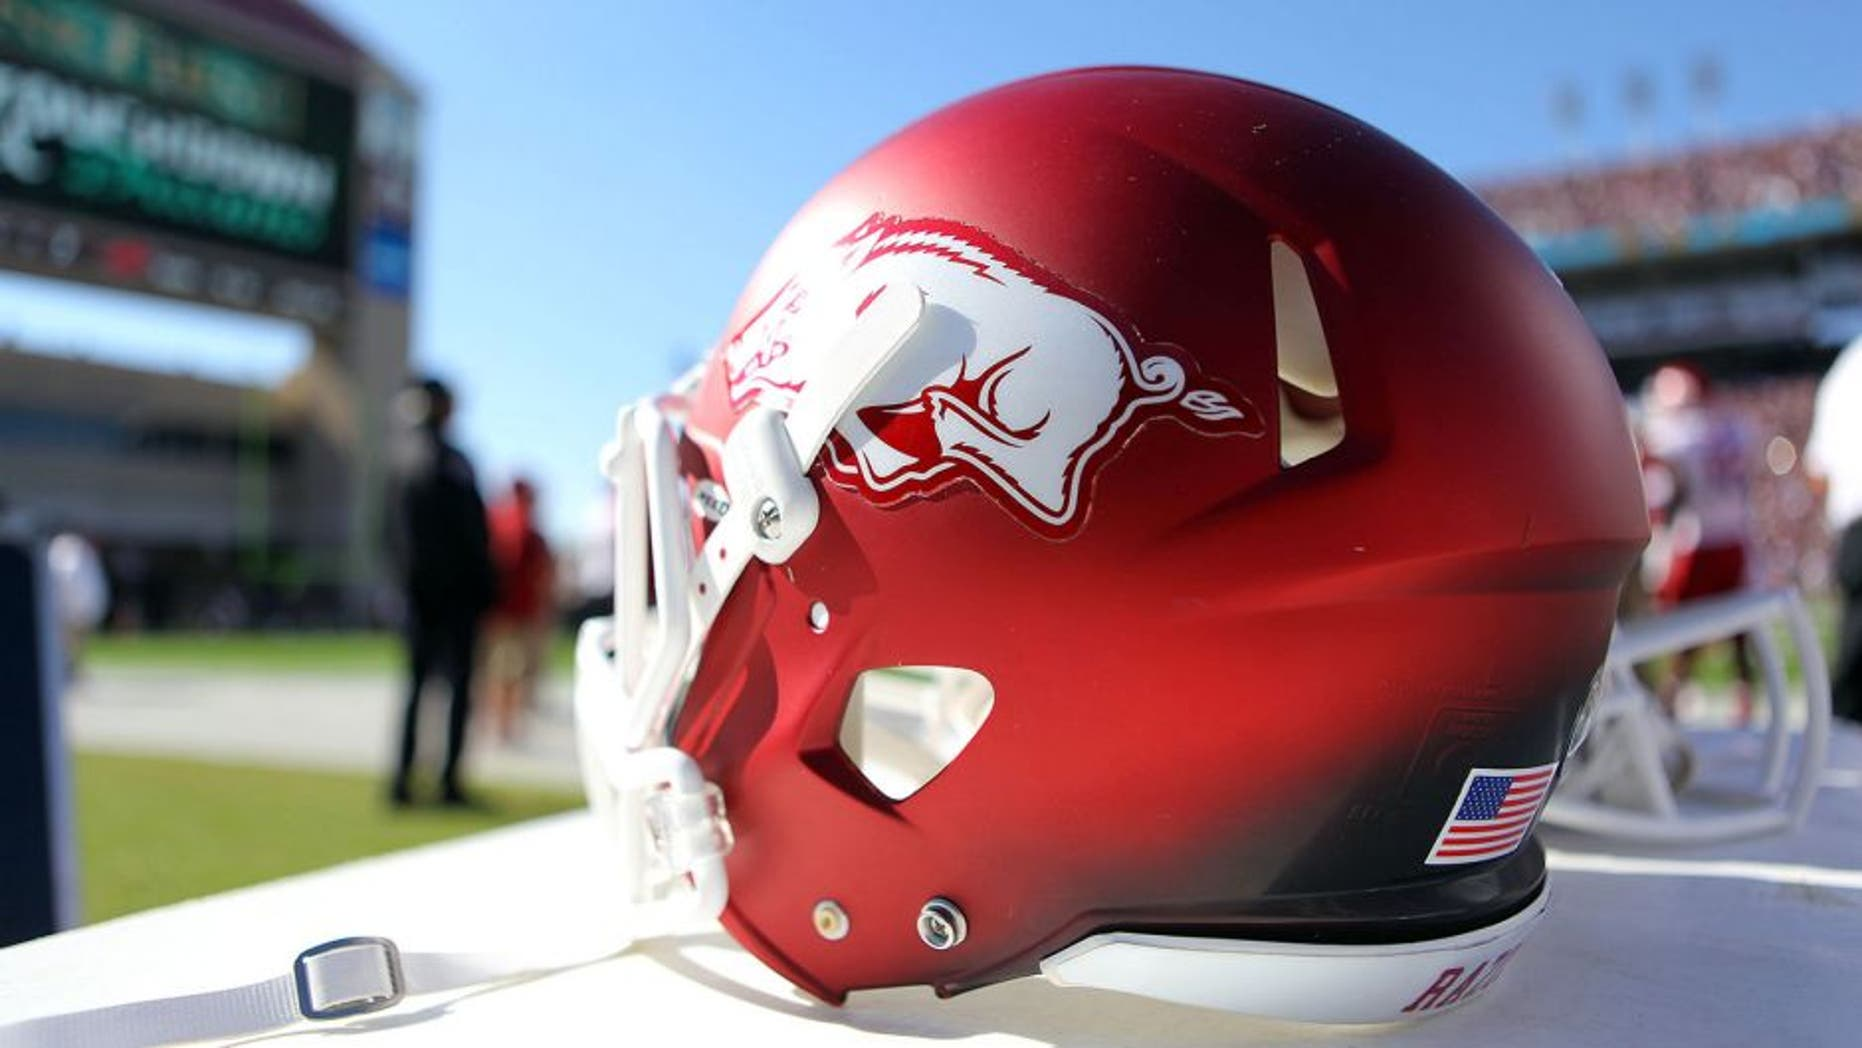 Nov 17, 2012; Starkville, MS, USA; Arkansas Razorbacks helmet during the game between the Mississippi State Bulldogs and the Arkansas Razorbacks at Davis Wade Stadium. Mississippi State Bulldogs defeated the Arkansas Razorbacks 45-14. Mandatory Credit: Spruce Derden–USA TODAY Sports